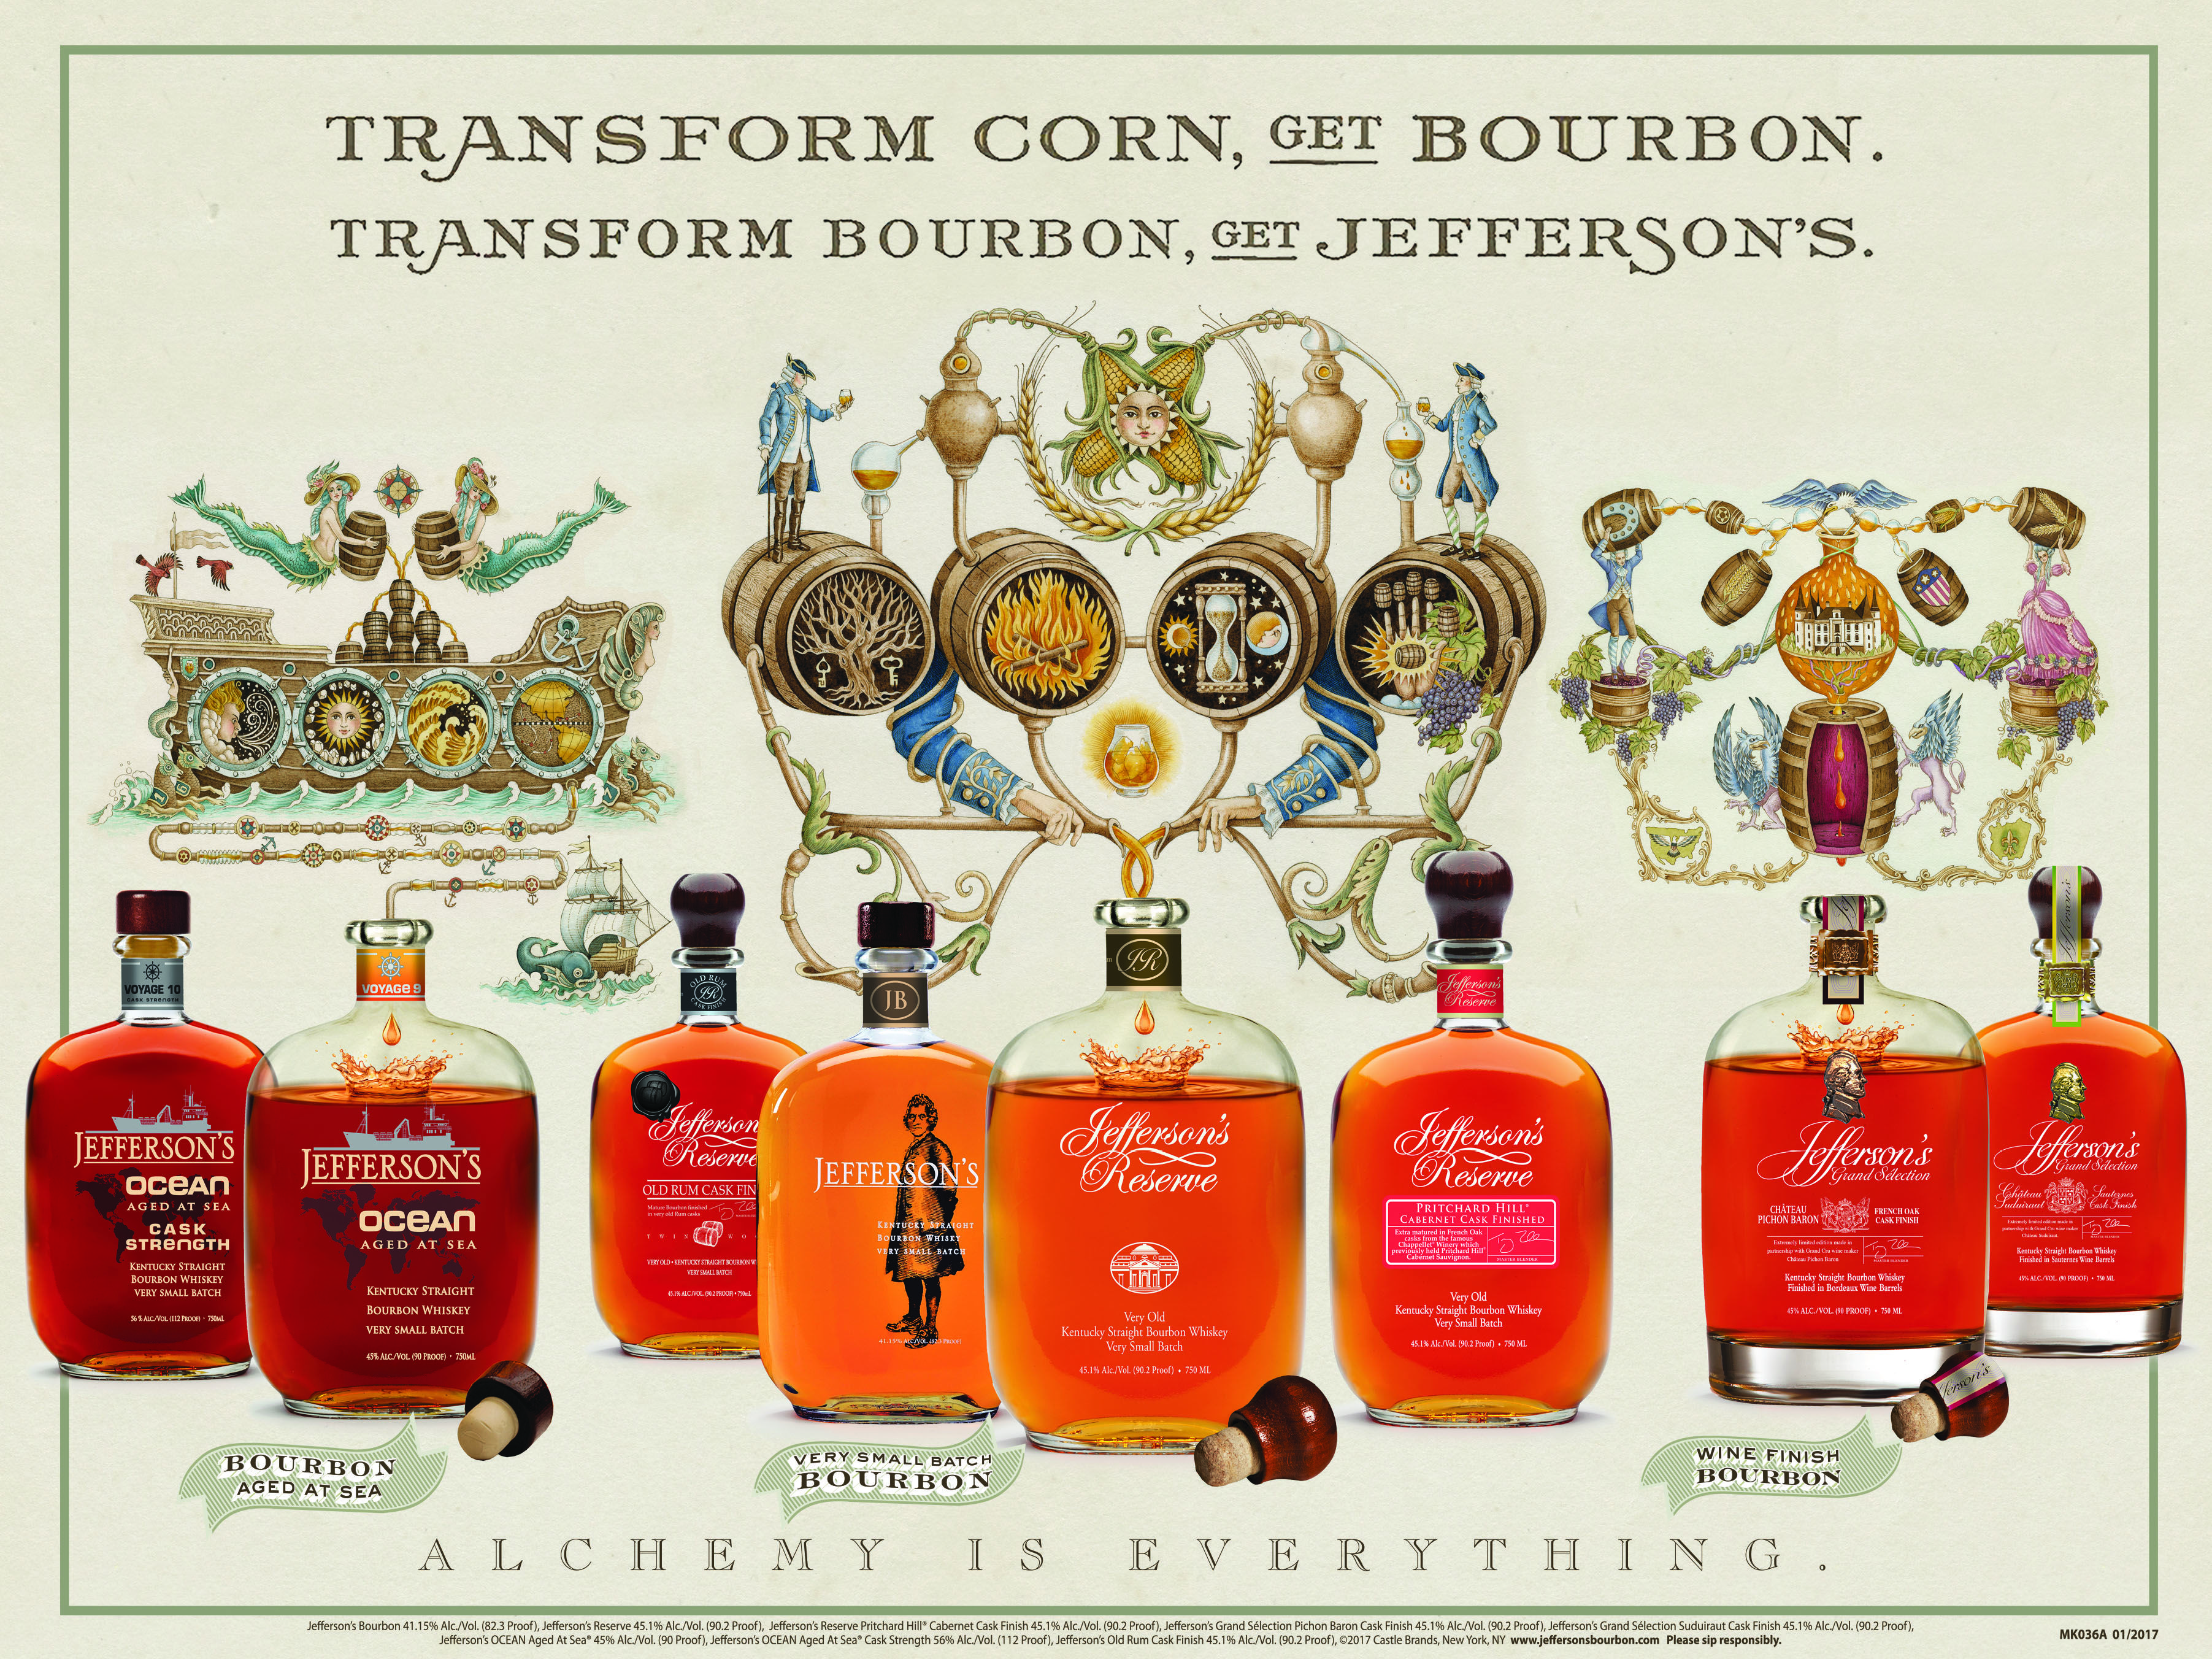 A transformational experience: Transform corn, get bourbon. Transform bourbon, get Jefferson's. That's our approach to bourbon, in a nutshell. This piece is part of our new 'Alchemy Is Everything' ad campaign, which explains Jefferson's Bourbon in more detail. Insider tip: posters are available at the Kentucky Artisan Distillery. Much more to come on this. #AlchemyIsEverything #bourbon